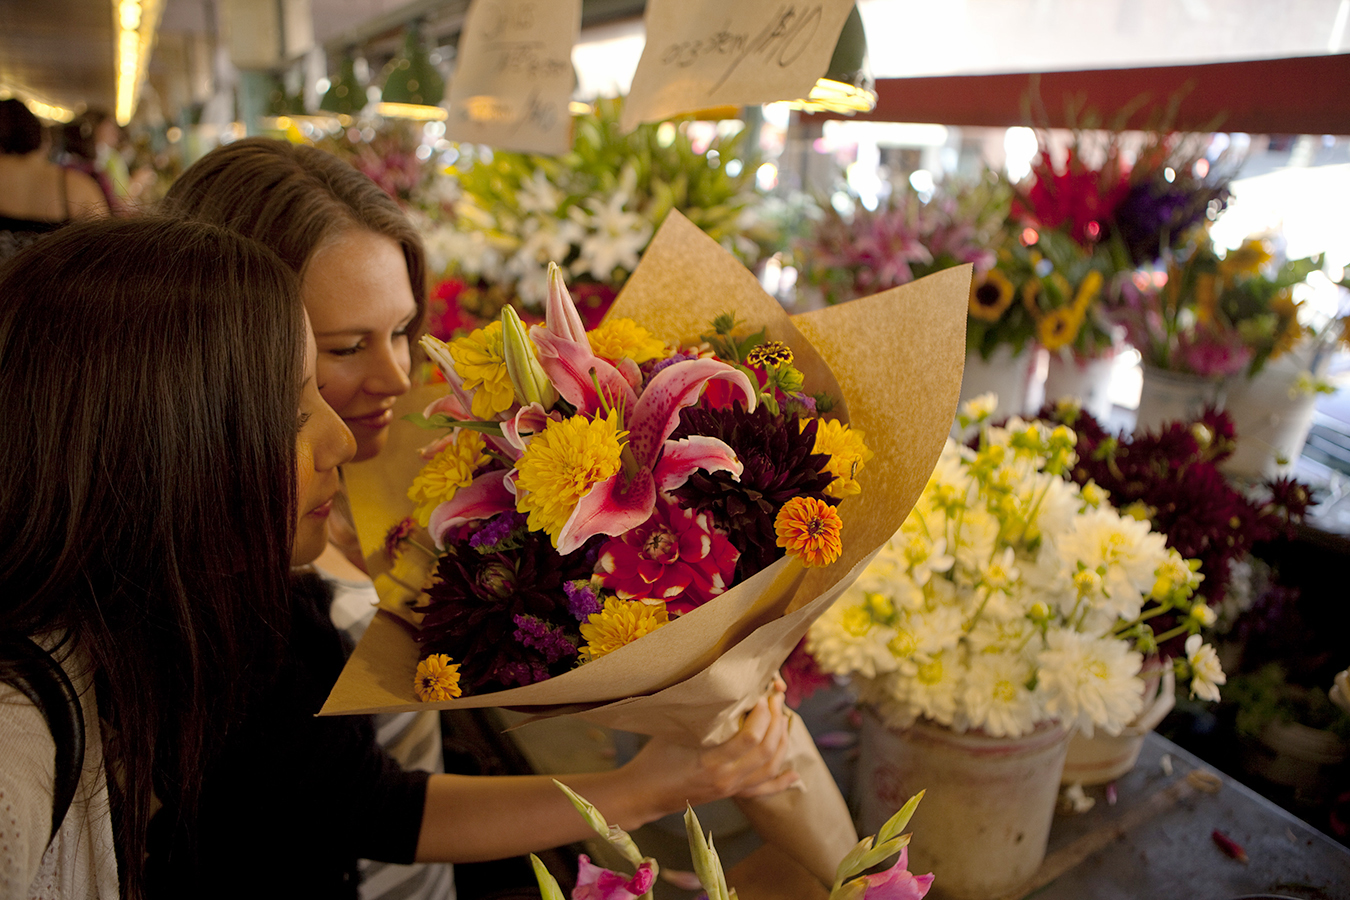 Two women selecting flowers for their wedding at Pike Place Market in Seattle. (Photo: Courtesy of Visit Seattle)